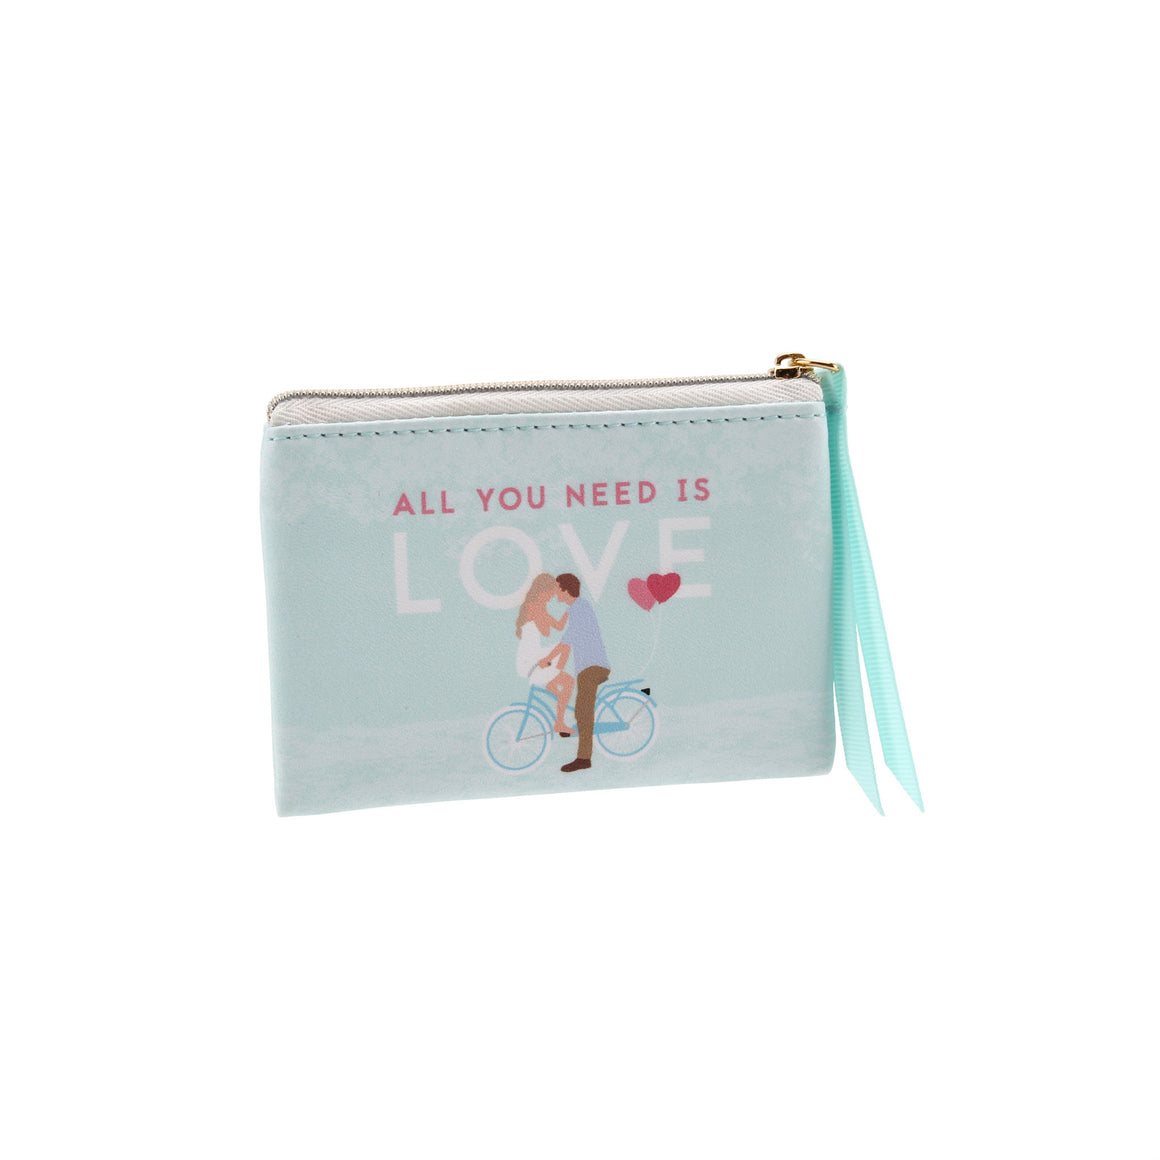 'All You Need Is Love' Coin Purse - The Love Trees